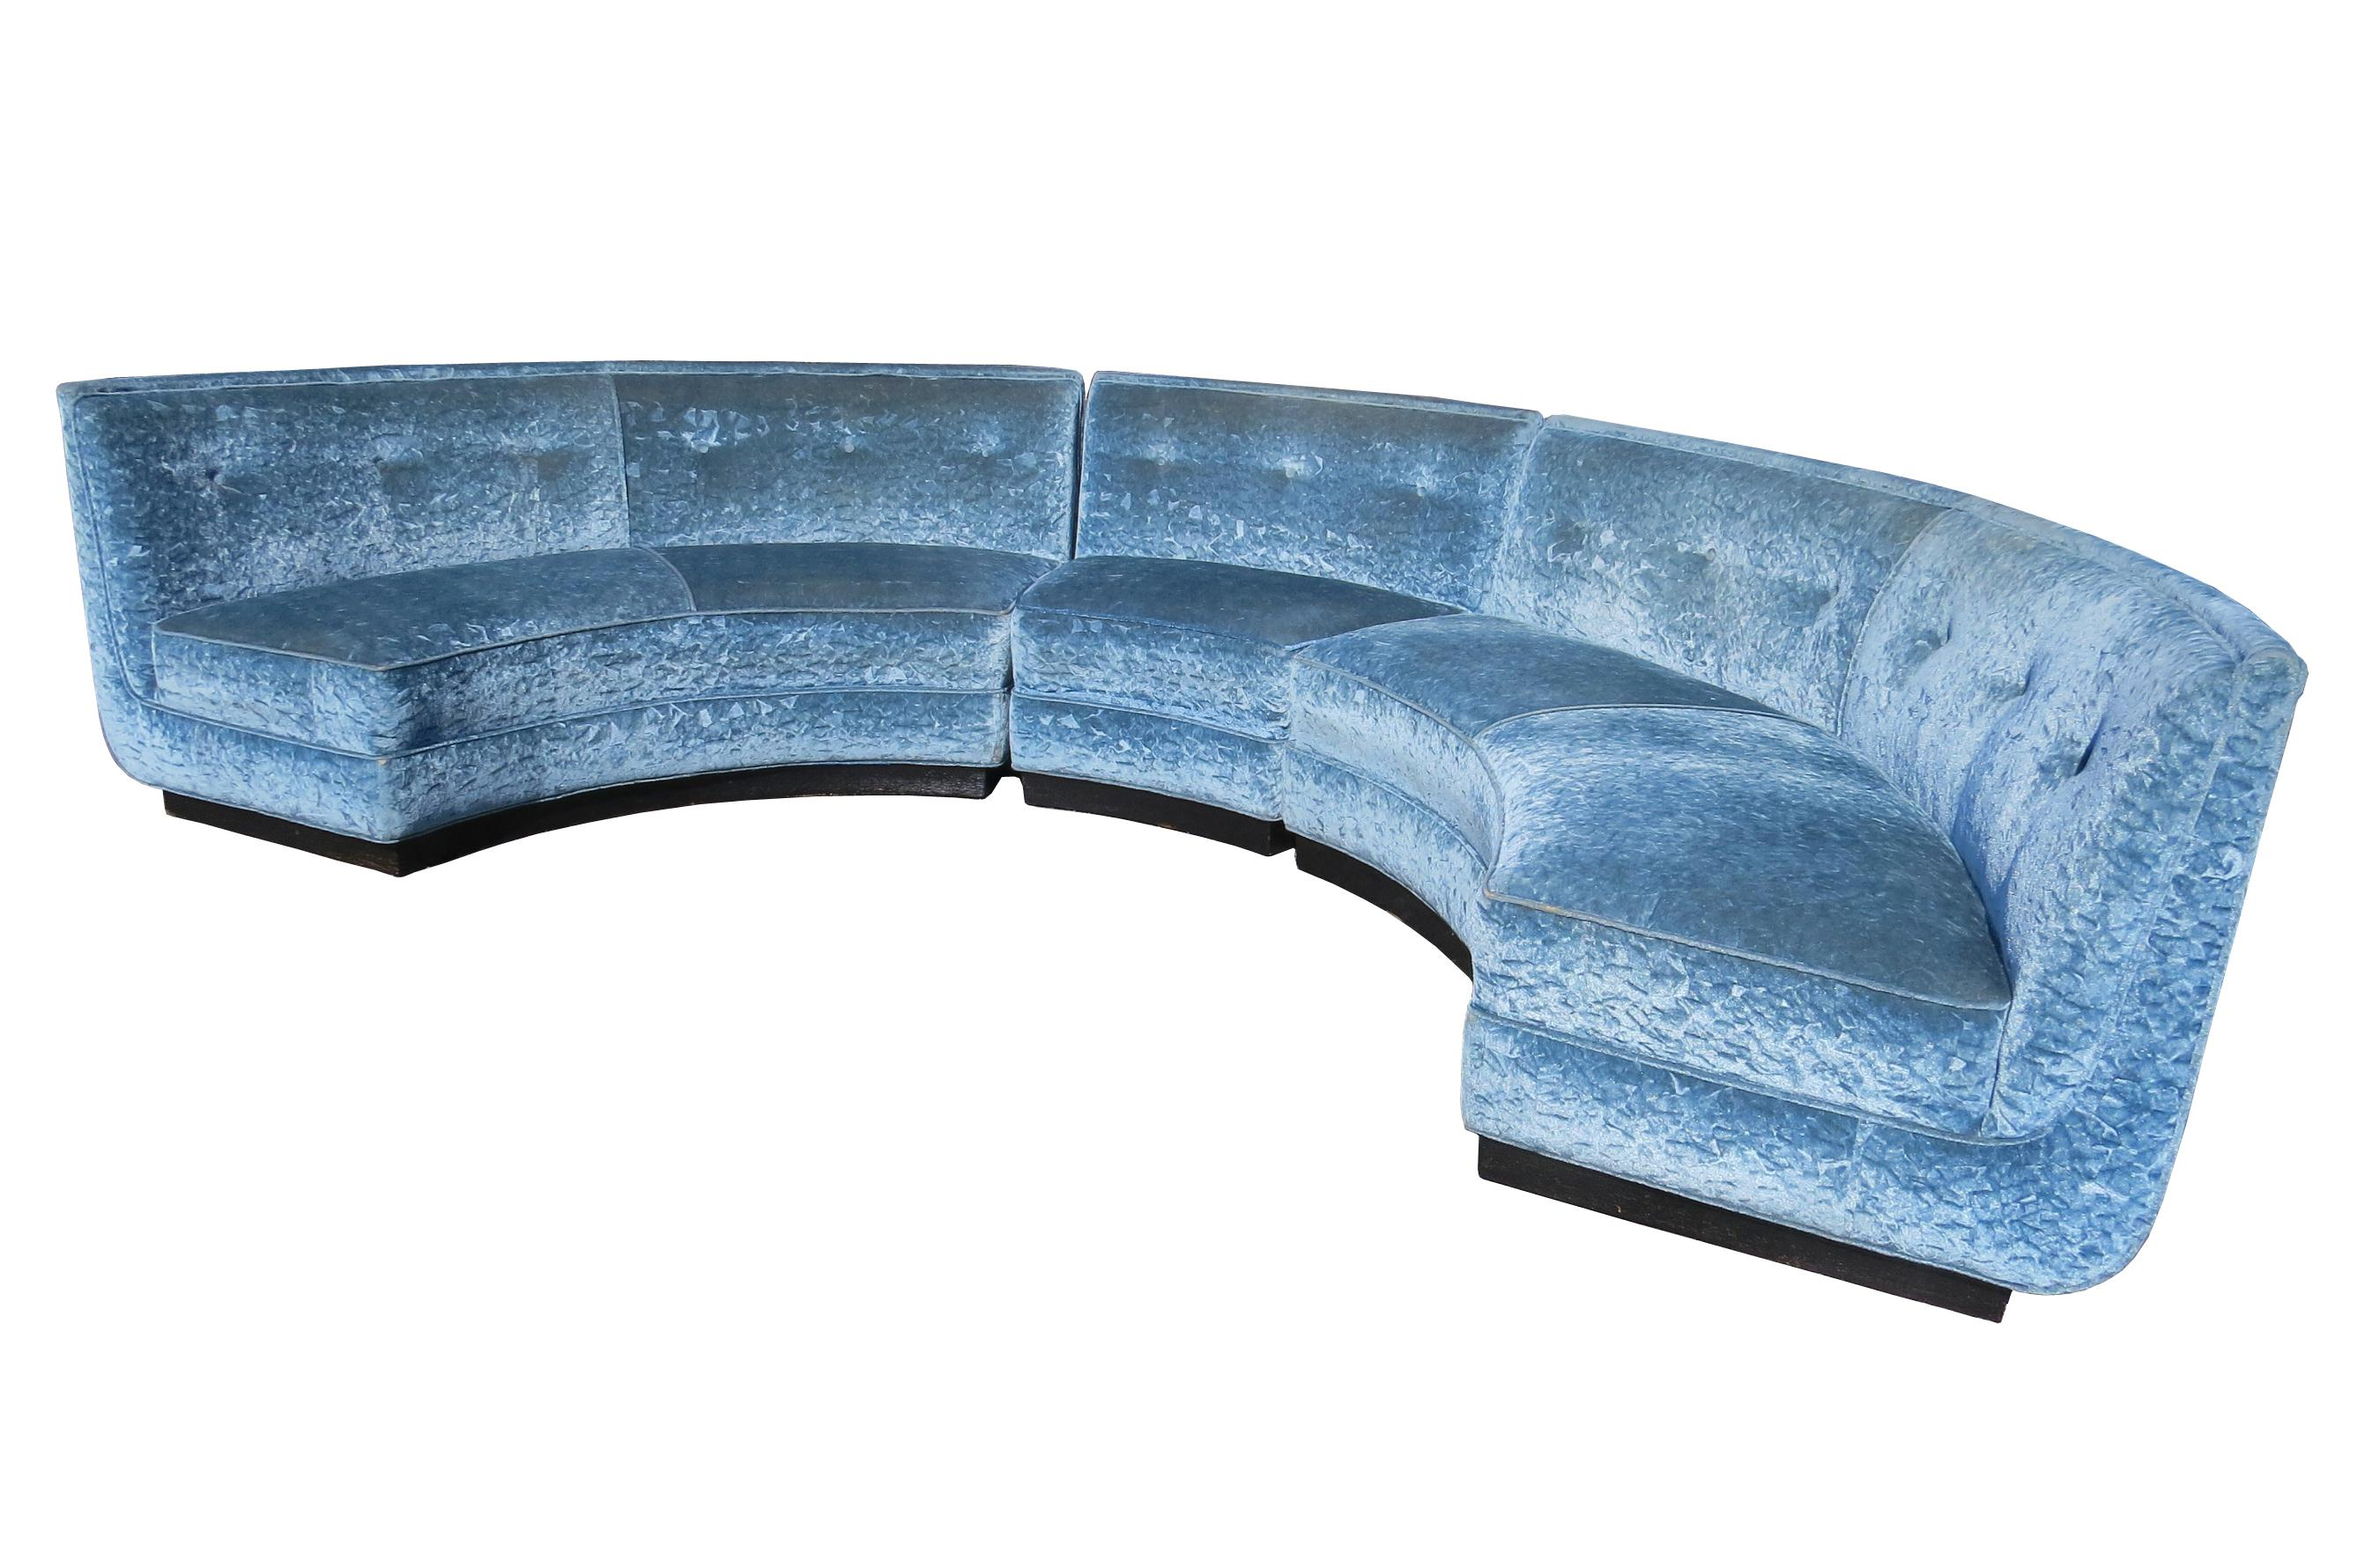 early 20th century semi circle sectional sofa in crushed blue velvet on plinth base 3 pieces